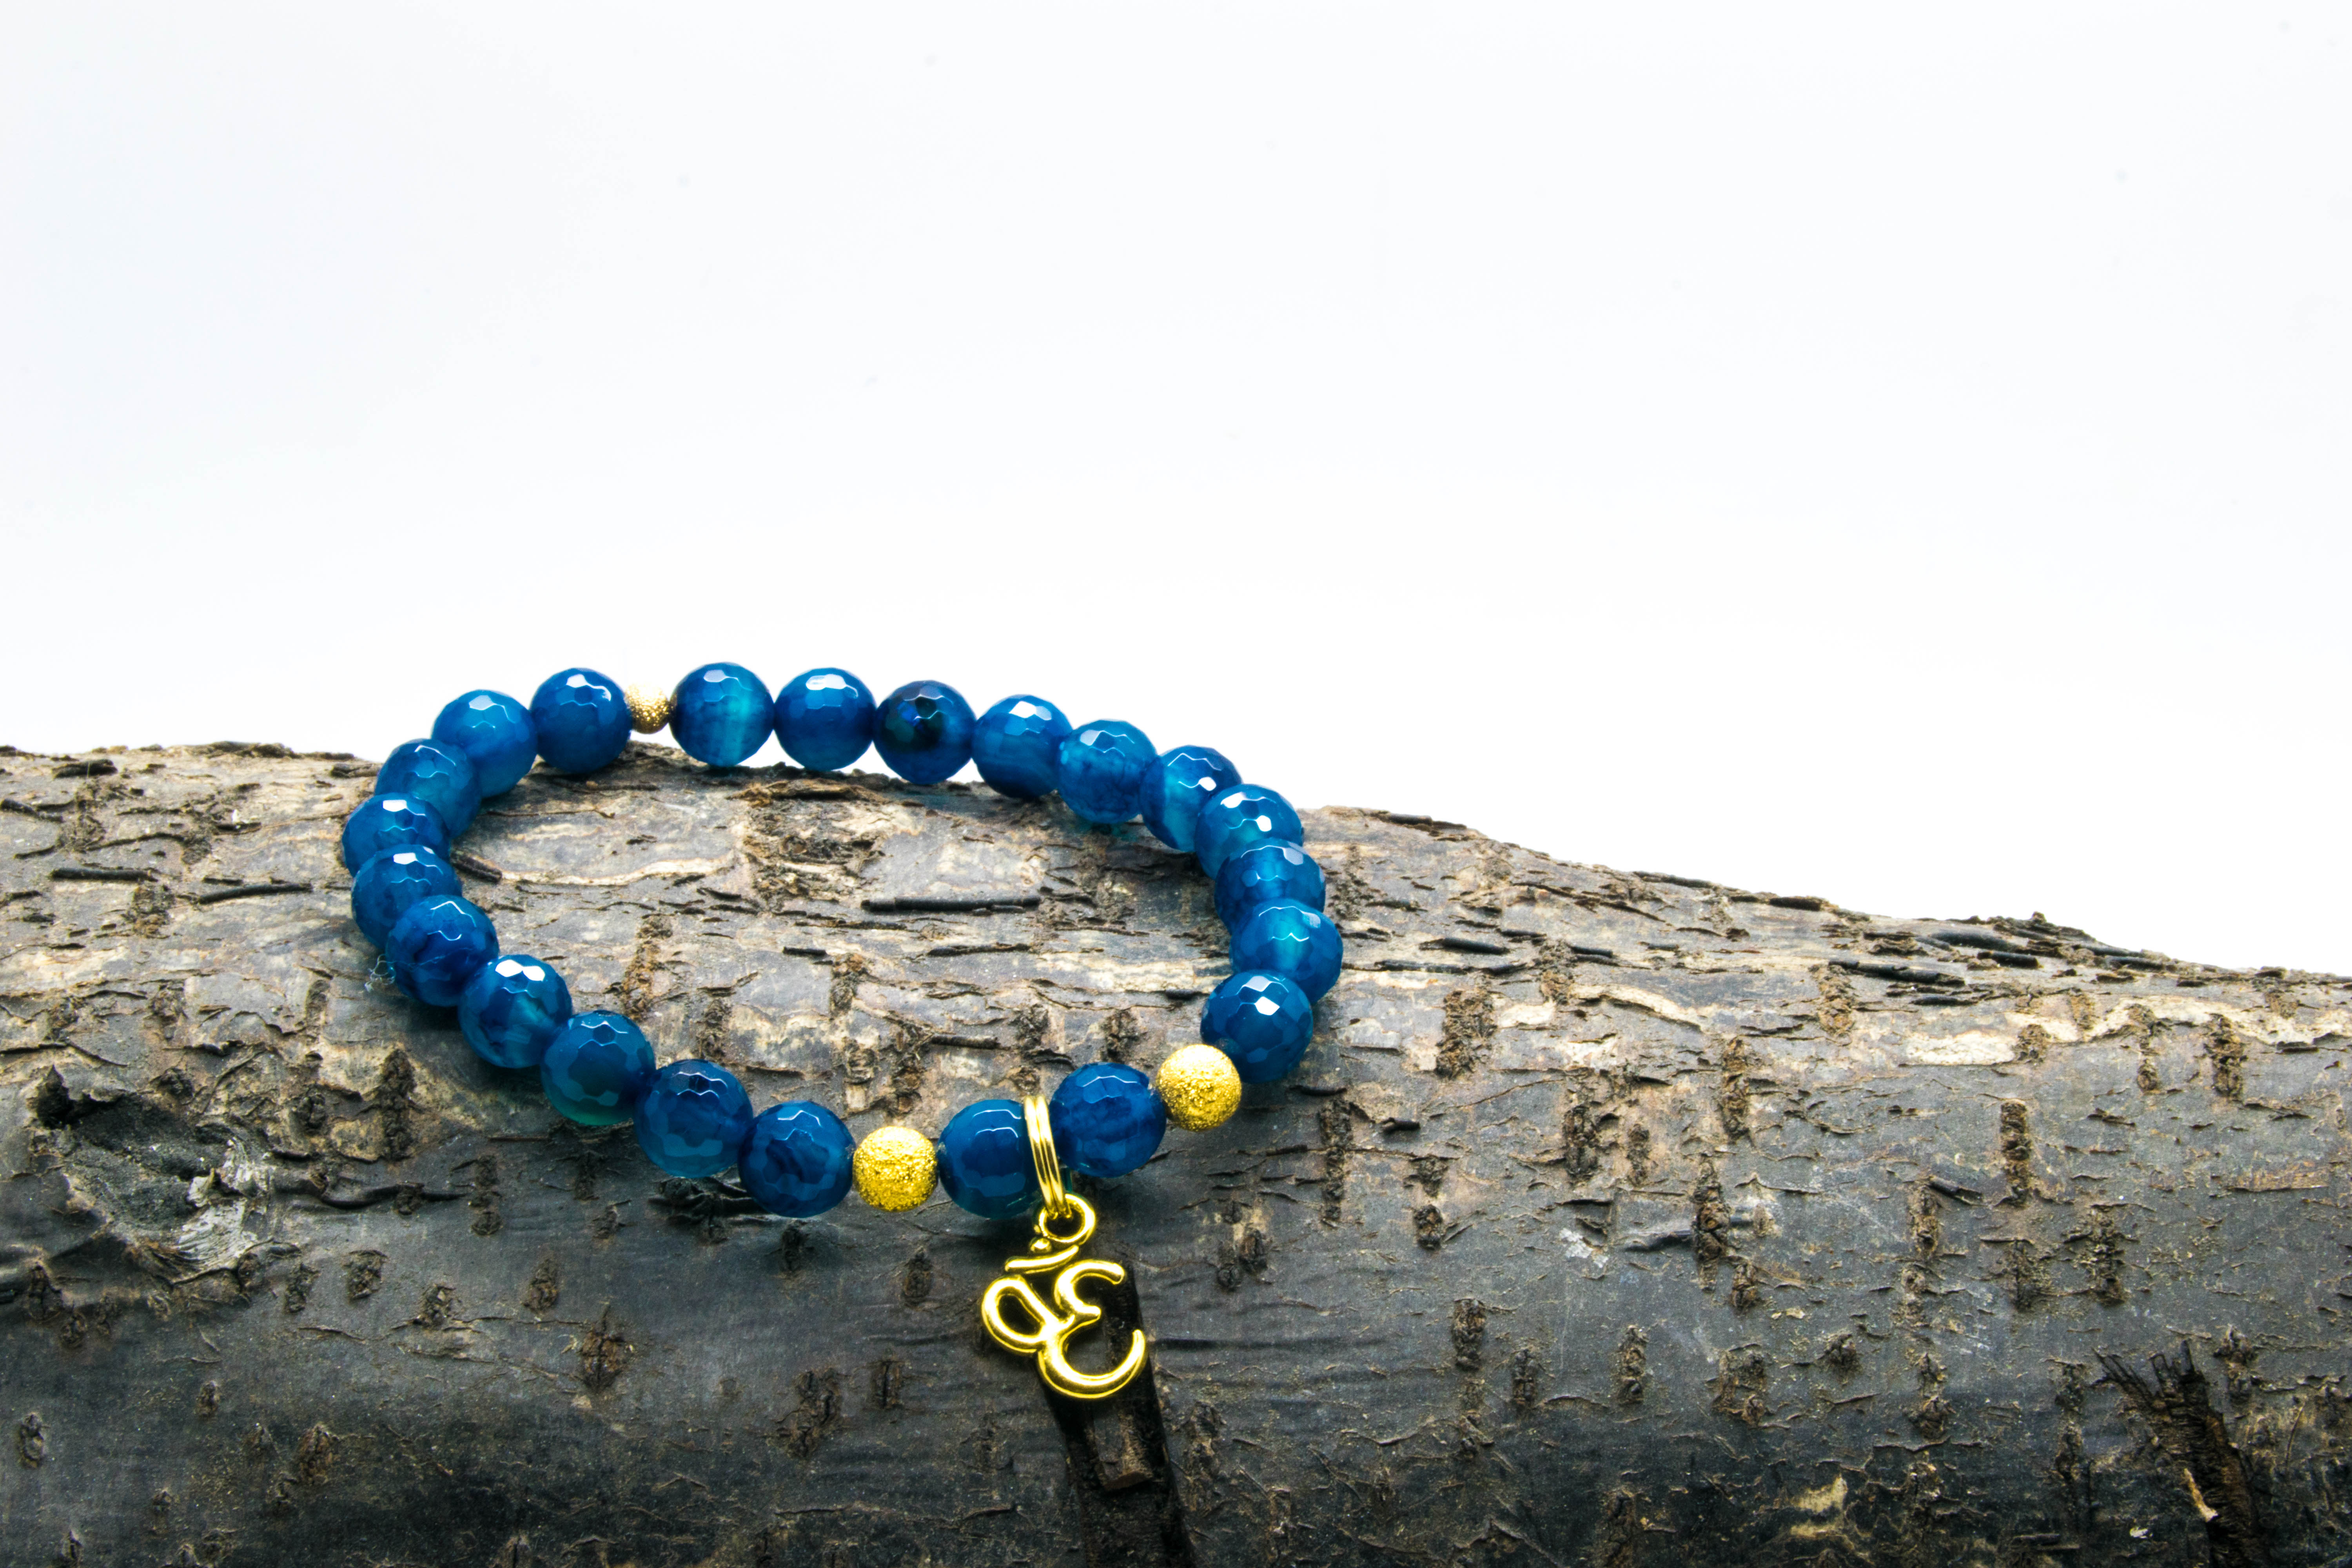 Blue Agate AUM or Om bracelet 'Shanti Range' – Throat, Solar Plexus & Crown Chakras